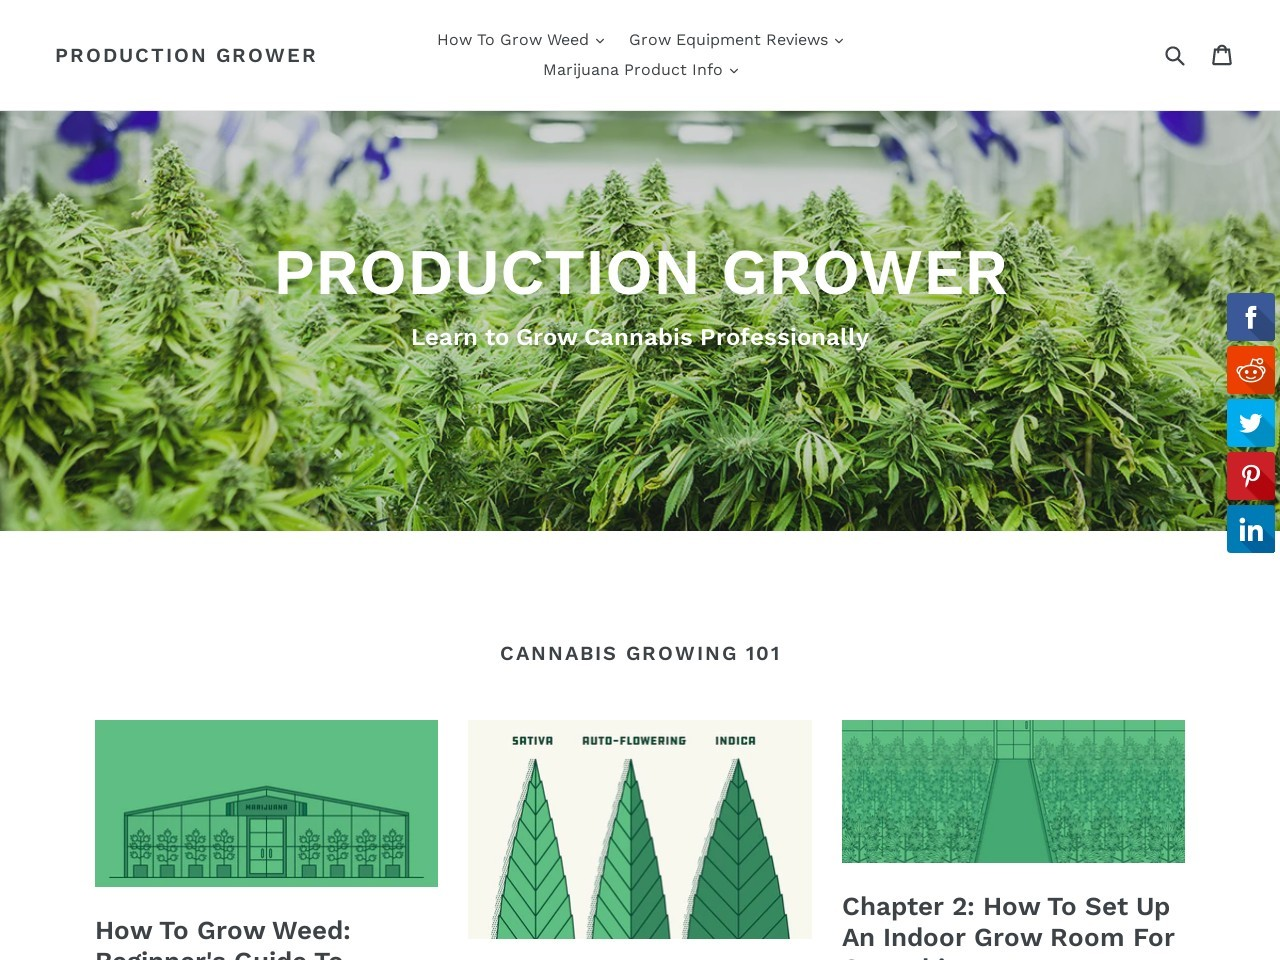 productiongrower.com